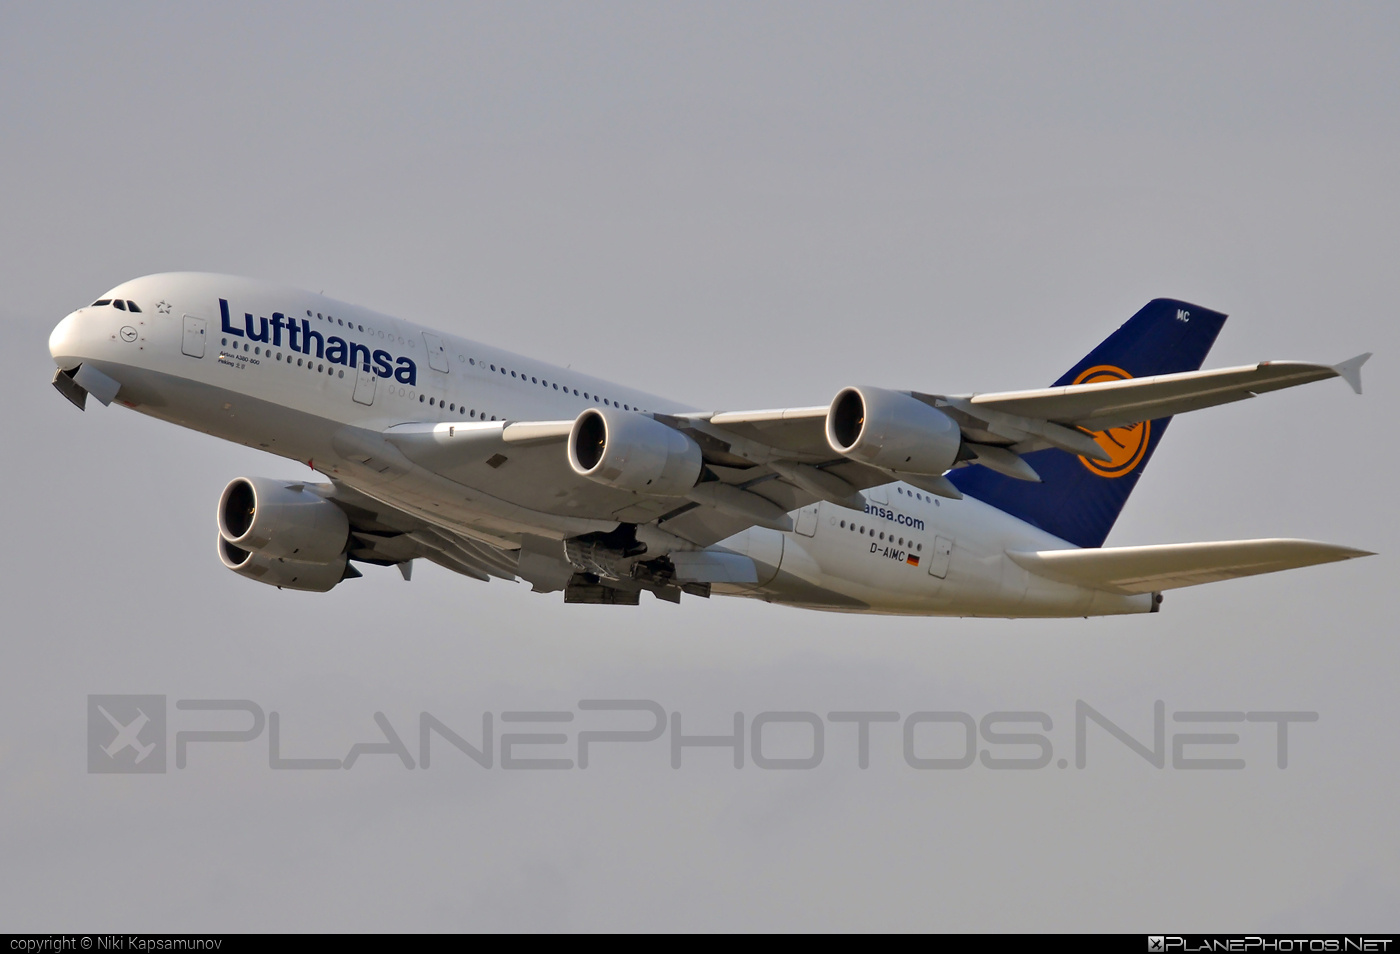 Airbus A380-841 - D-AIMC operated by Lufthansa #a380 #a380family #airbus #airbus380 #lufthansa